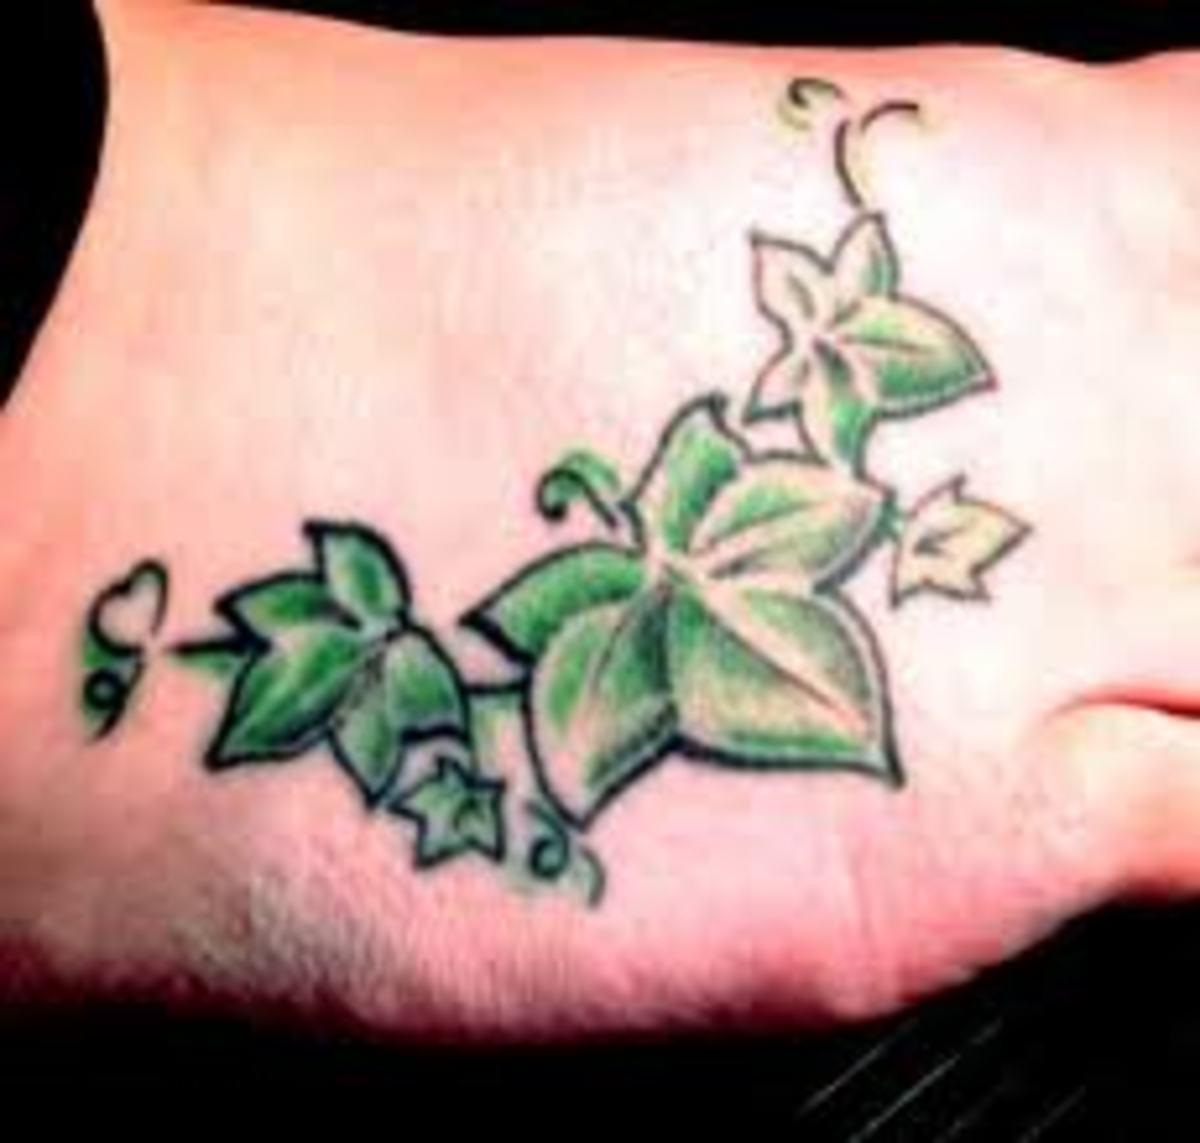 ivy tattoo designs and meanings ivy flower tattoos and vine tattoos hubpages. Black Bedroom Furniture Sets. Home Design Ideas